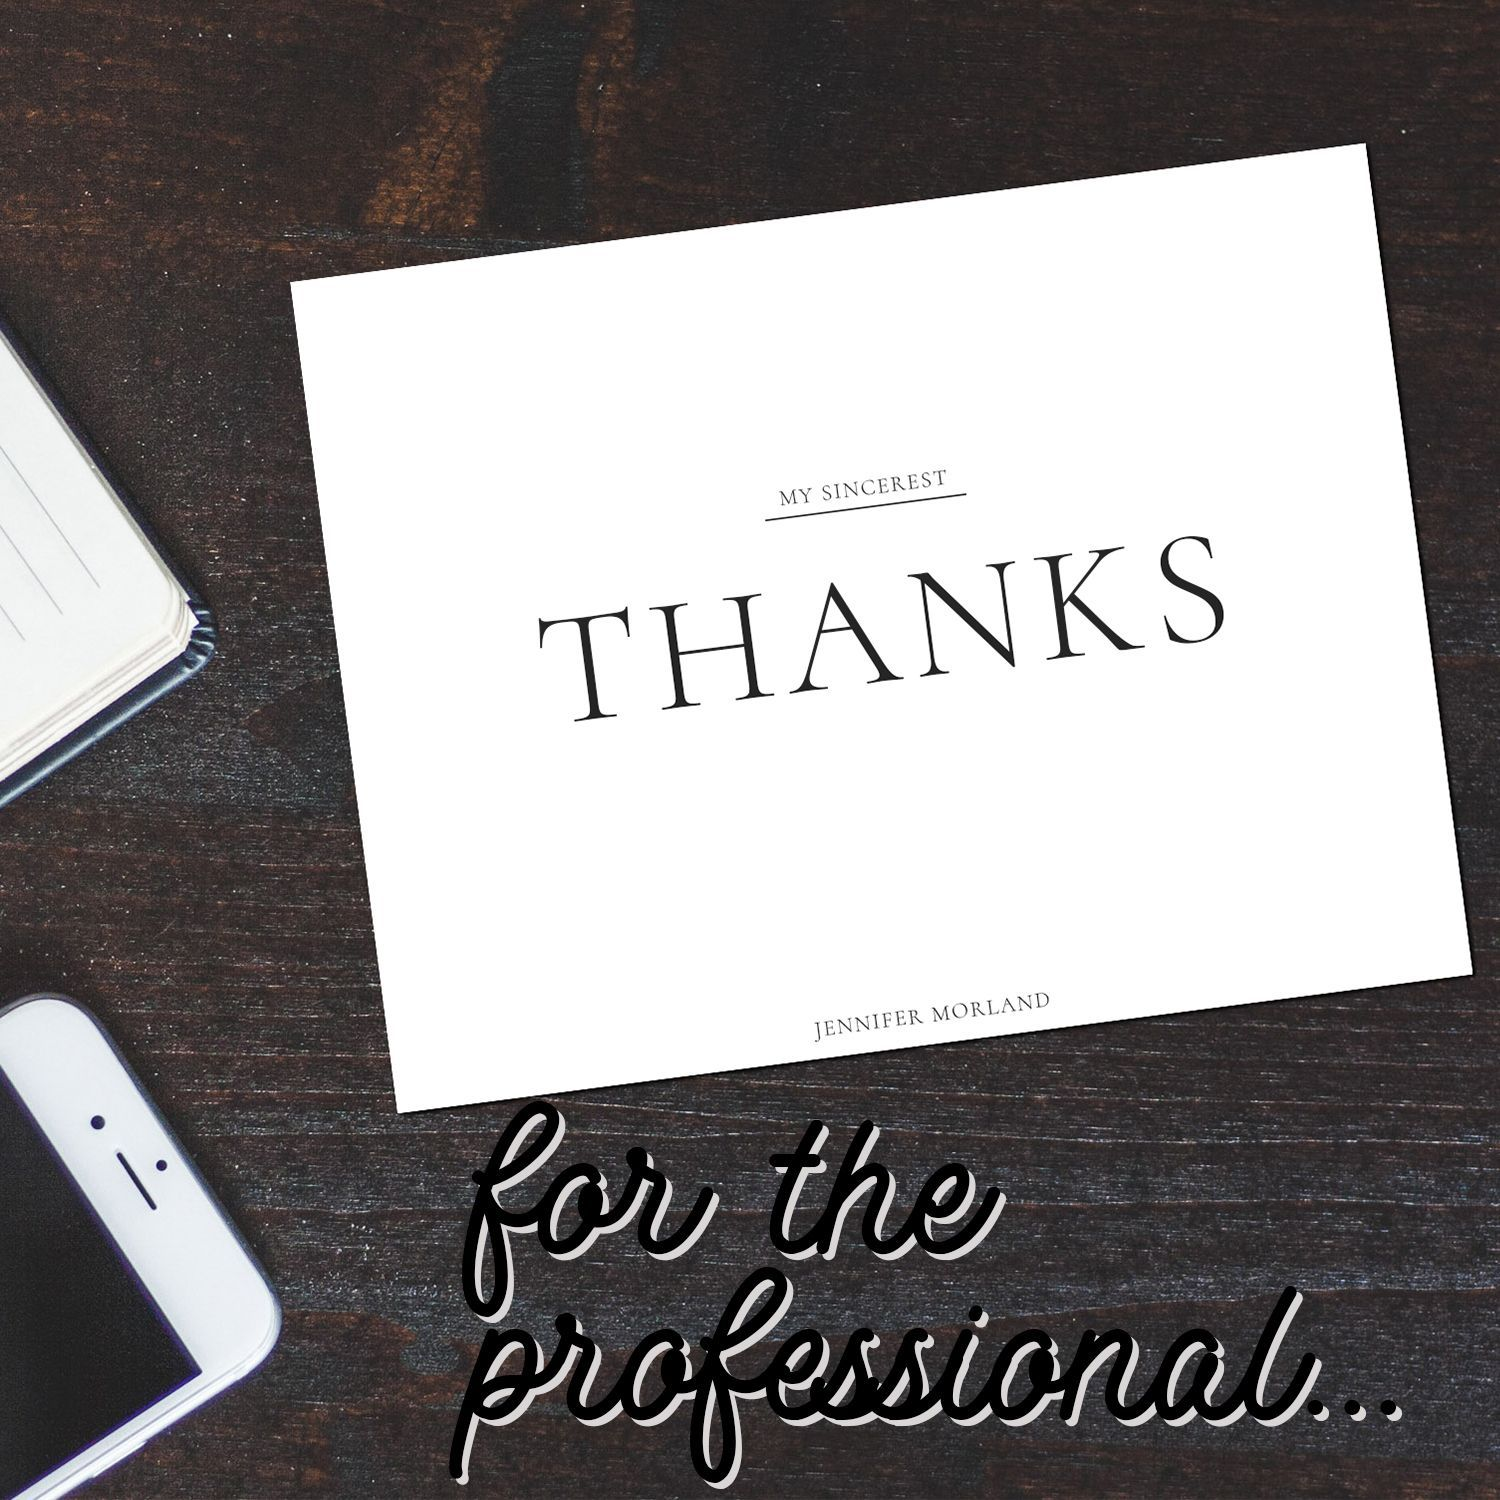 Professional Classy Thank You Card Ideas For The Working Women This Style Is Excellent For Business Or Personal Use From Thank You Cards Custom Notes Cards